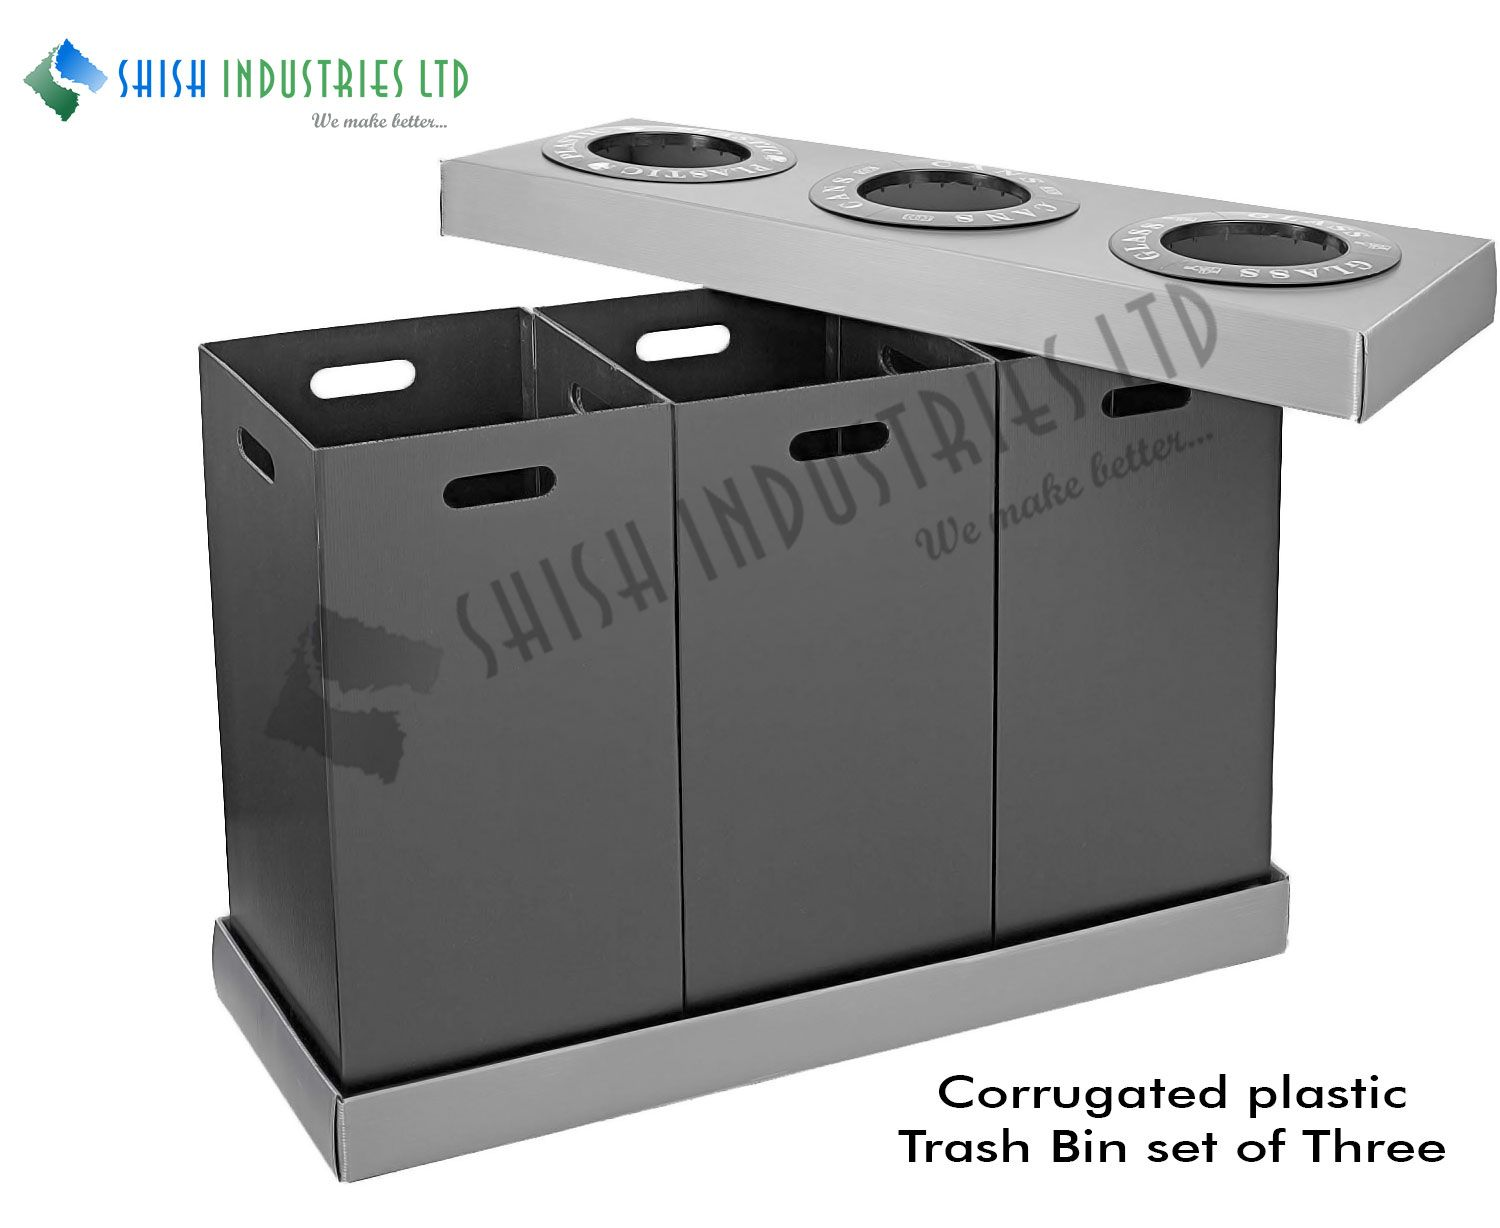 Hollow Profile Sheet Can Be Used To Manufacture Polypropylene Low Cost Container Designed For Separate Waste Ma Locker Storage Manufacturing Corrugated Sheets